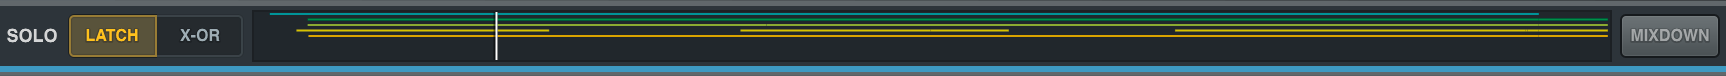 workflow-mix.png